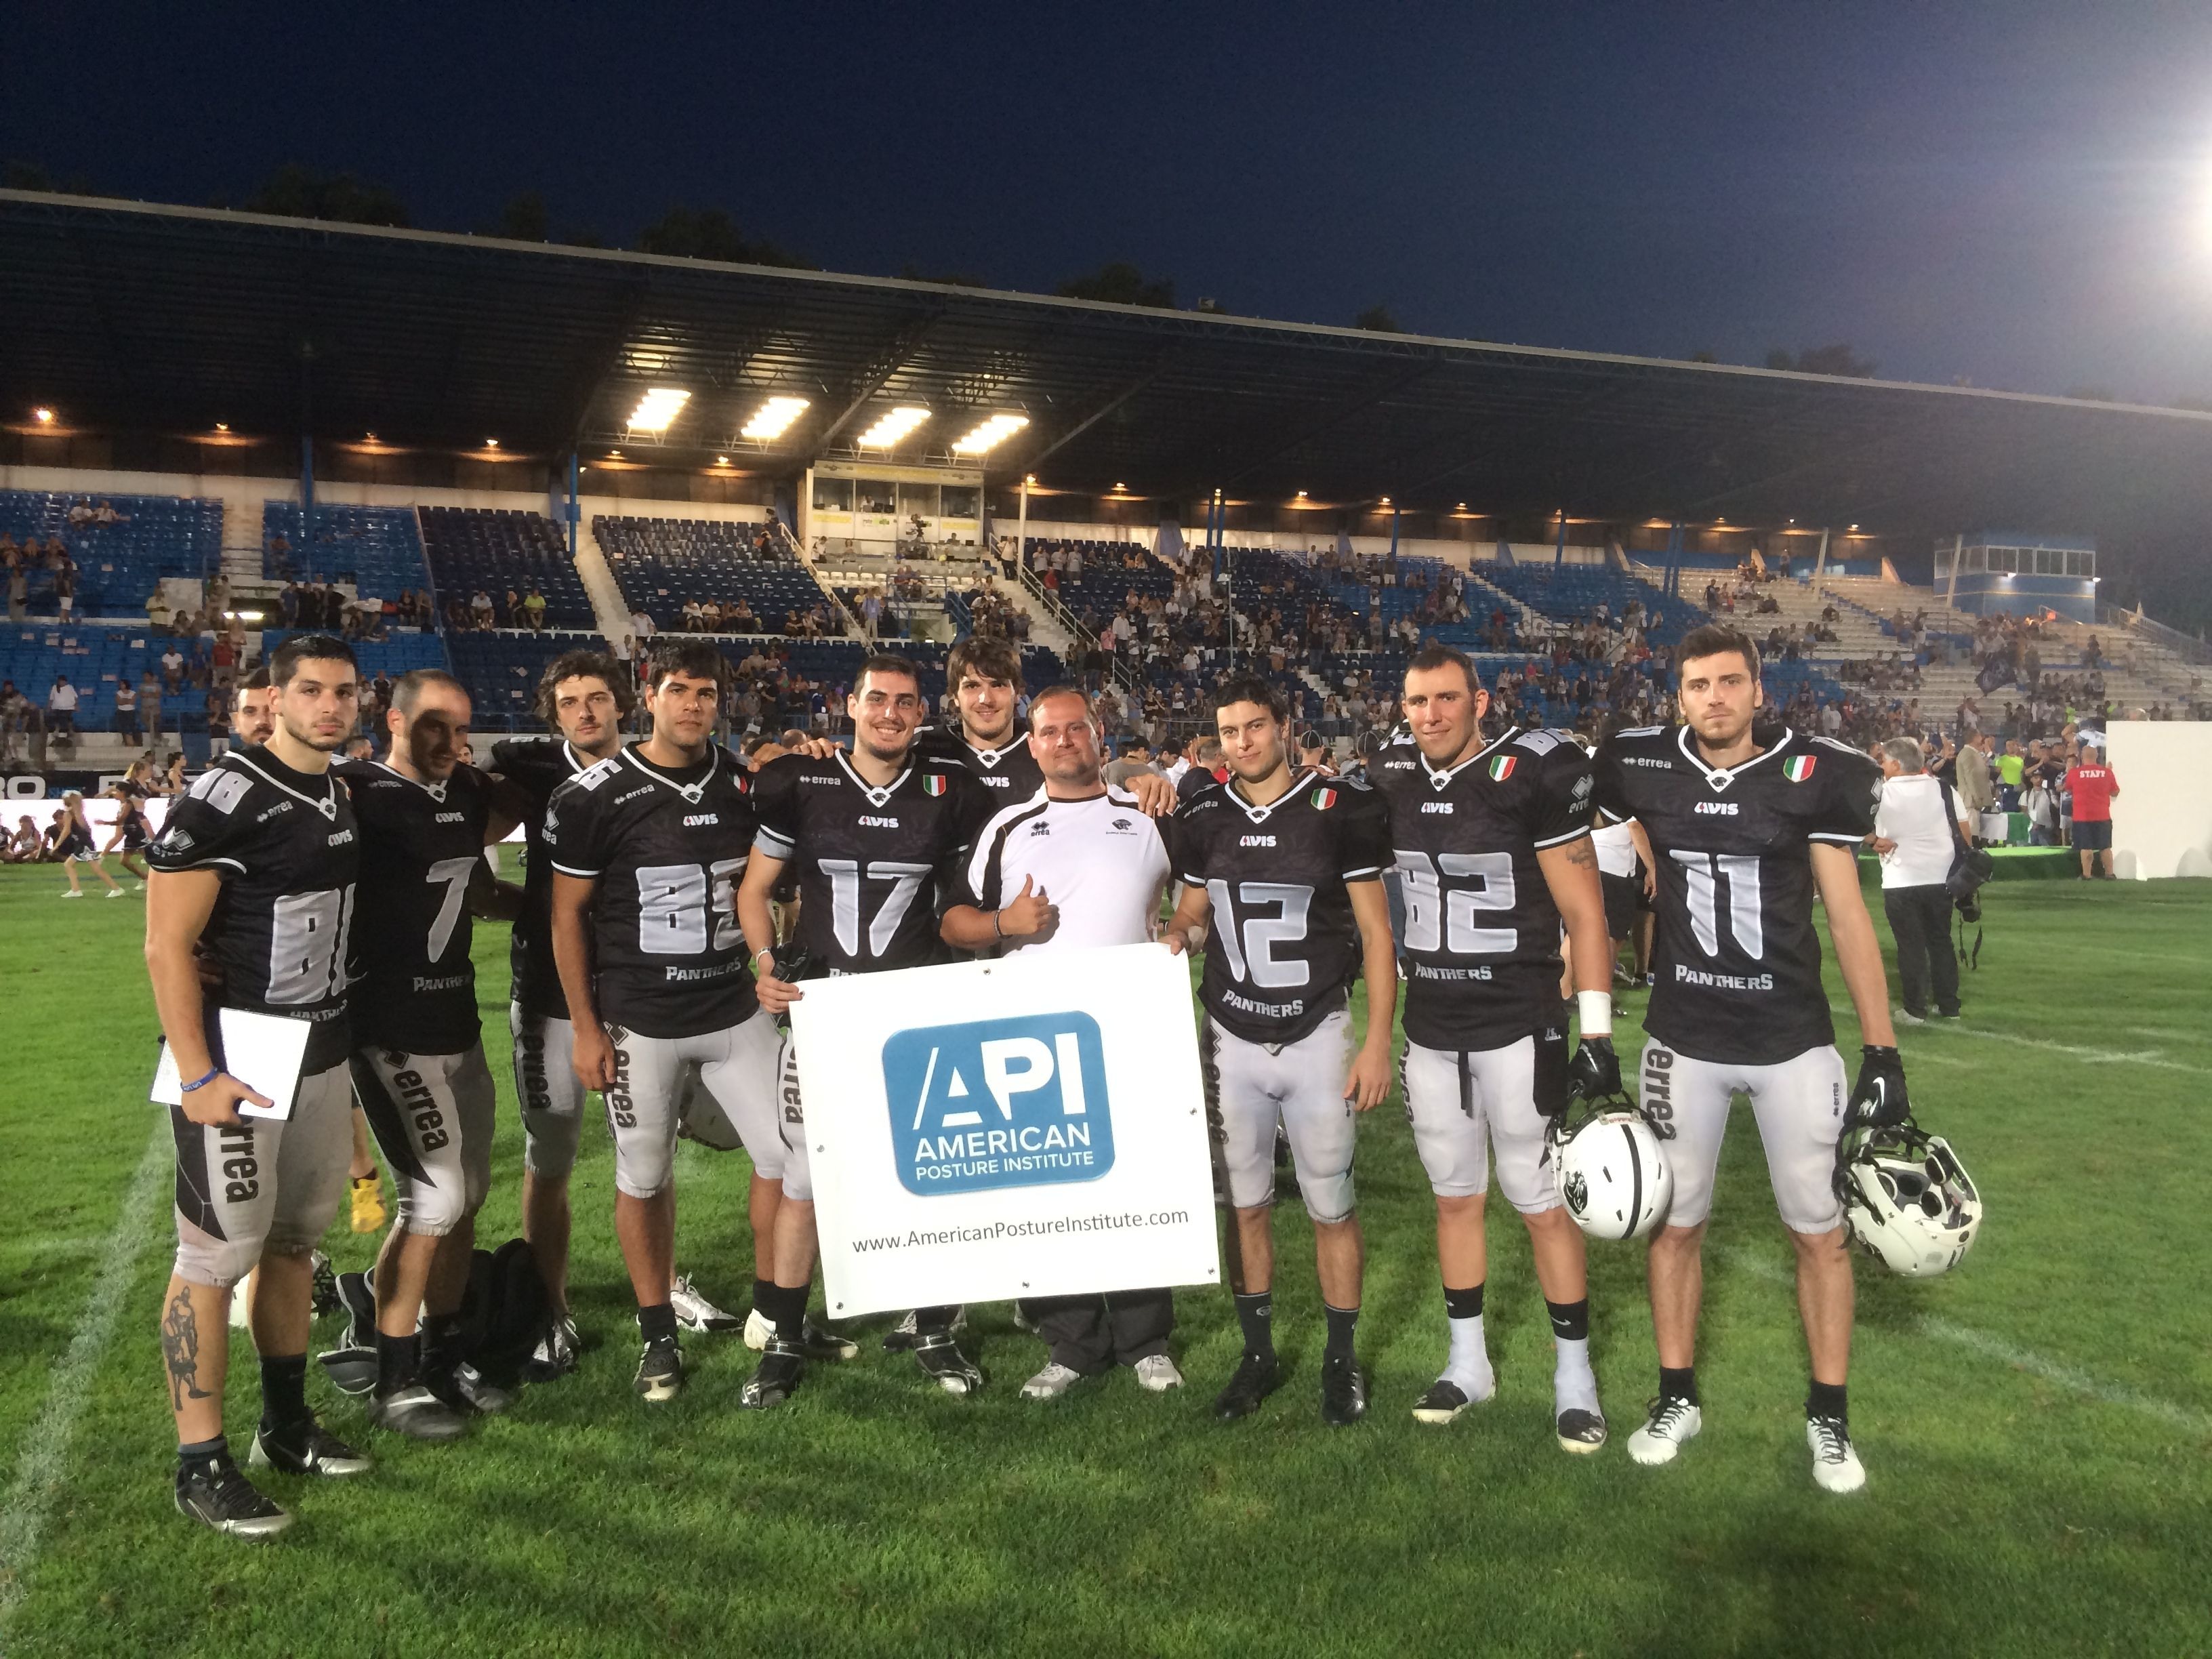 This team supports API's #FITPosture program for helping them to an undefeated 10 - 0 regular season finish! #Posture